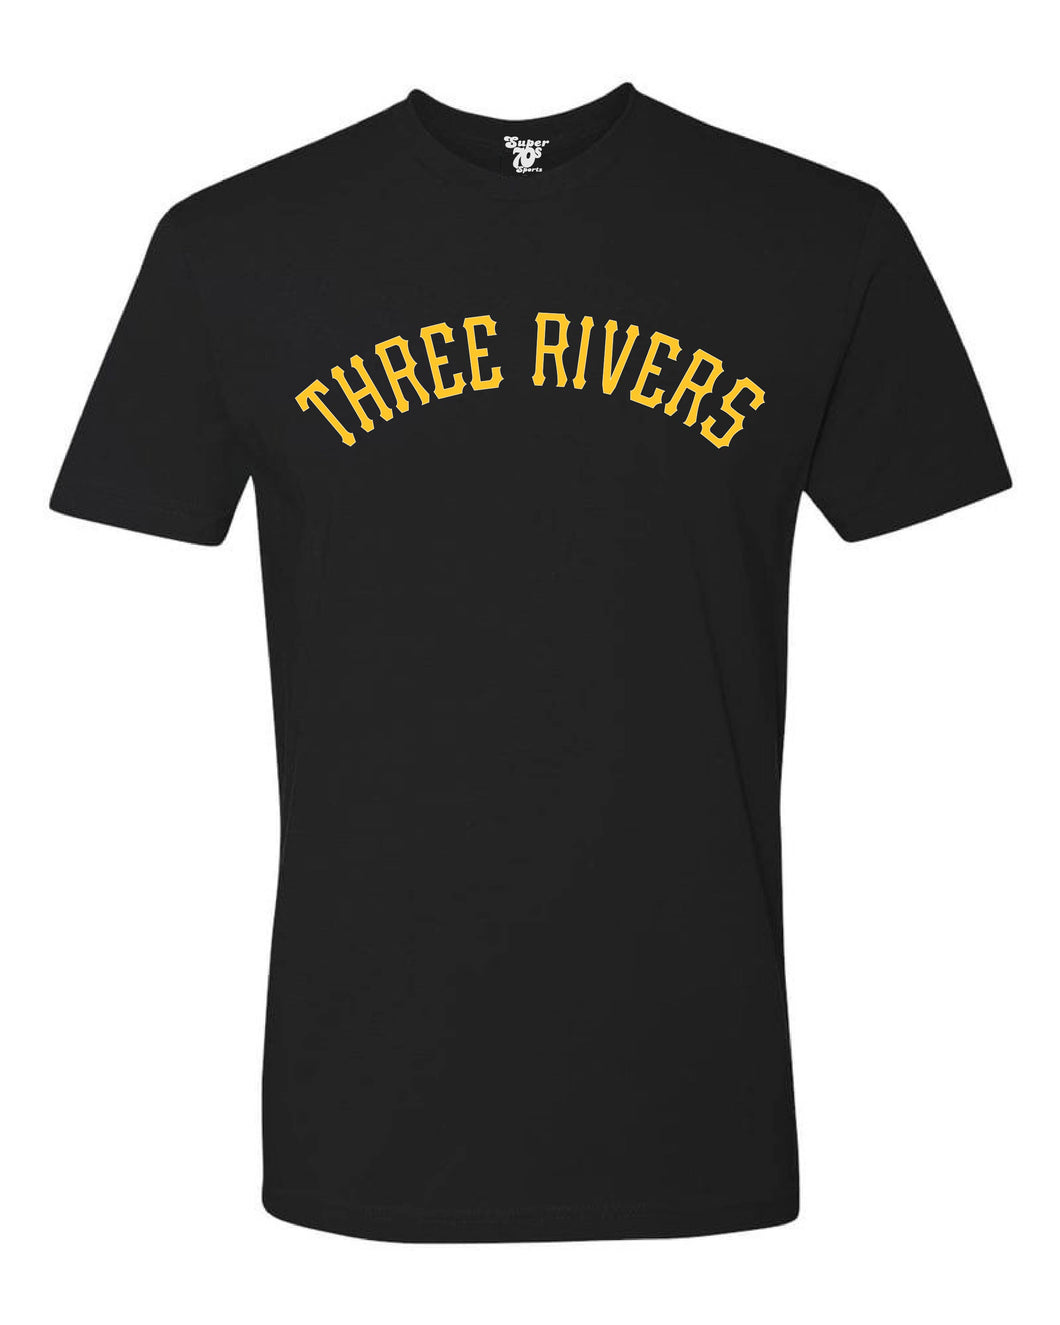 Three Rivers Tee